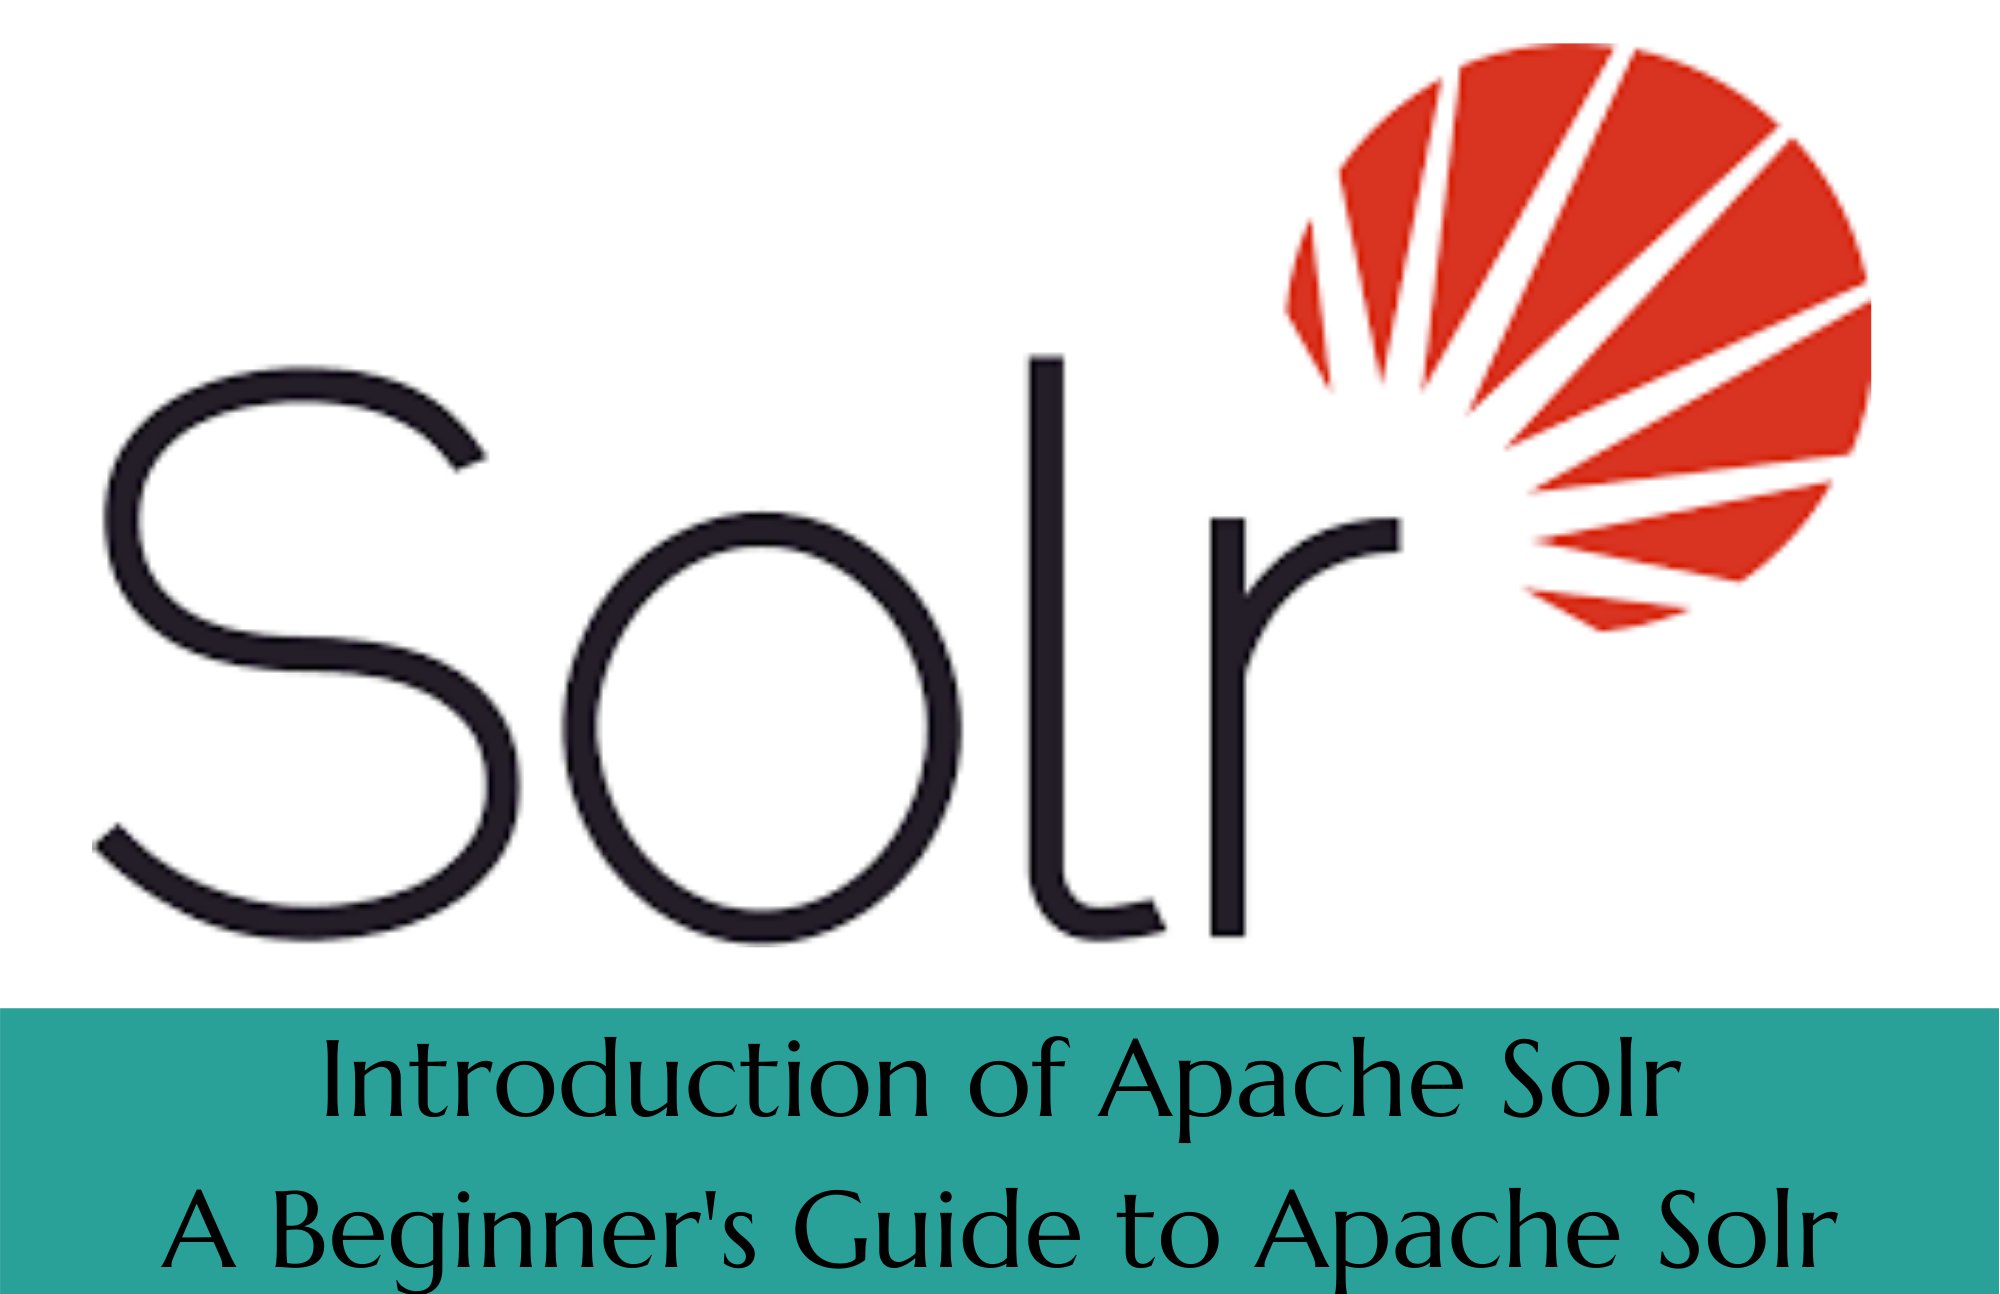 Introduction of Apache Solr, A Beginner's Guide to ApacheSolr